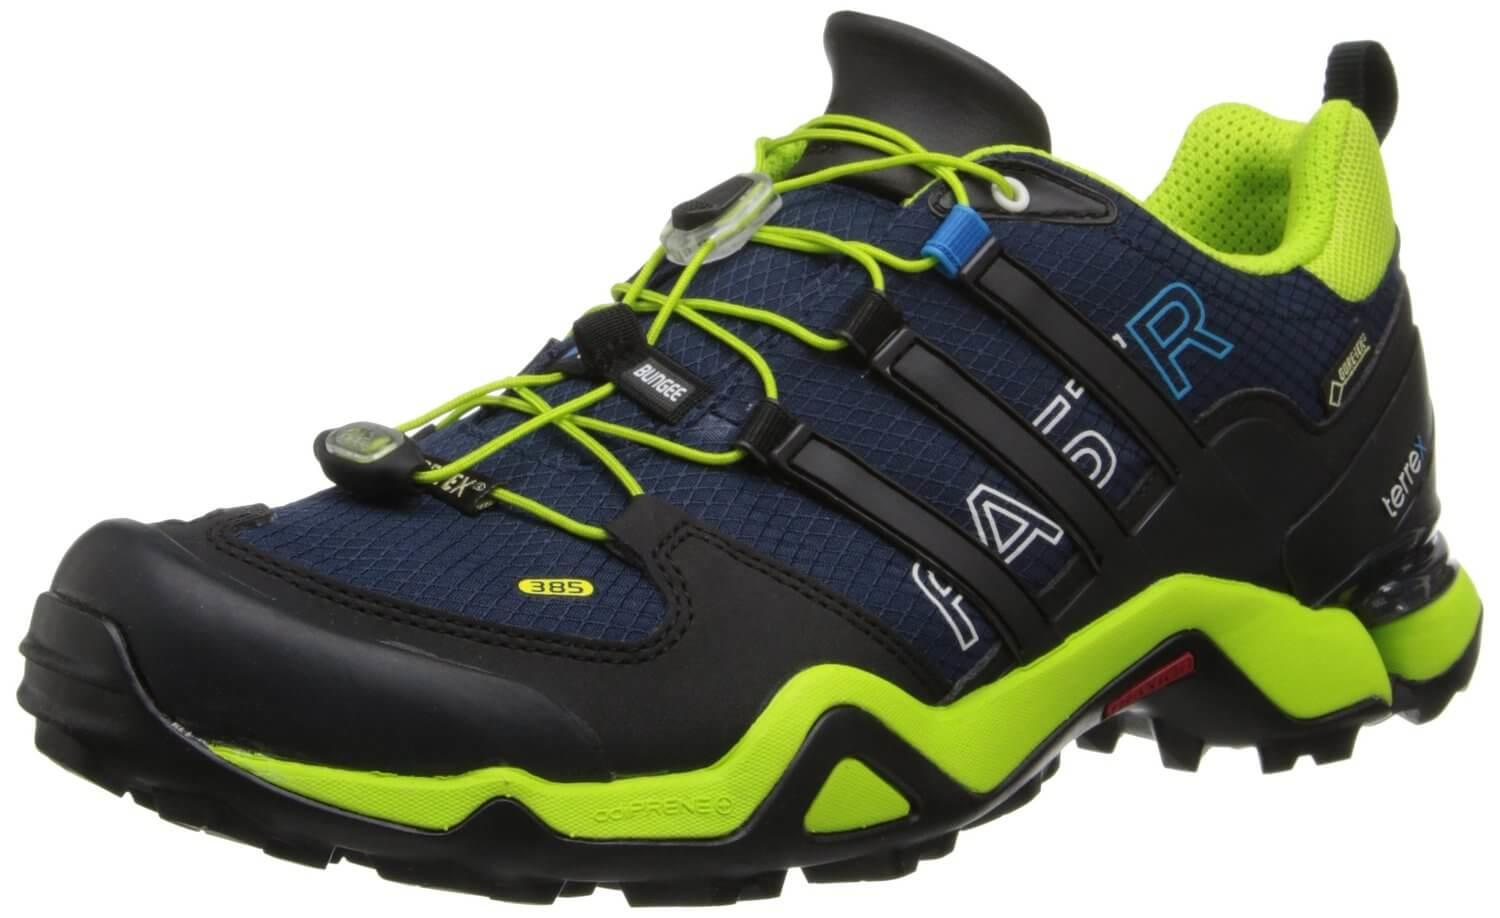 820ed1ea3 The Adidas Terrex Fast R GTX is a shoe designed for use on trails and  mountain ...